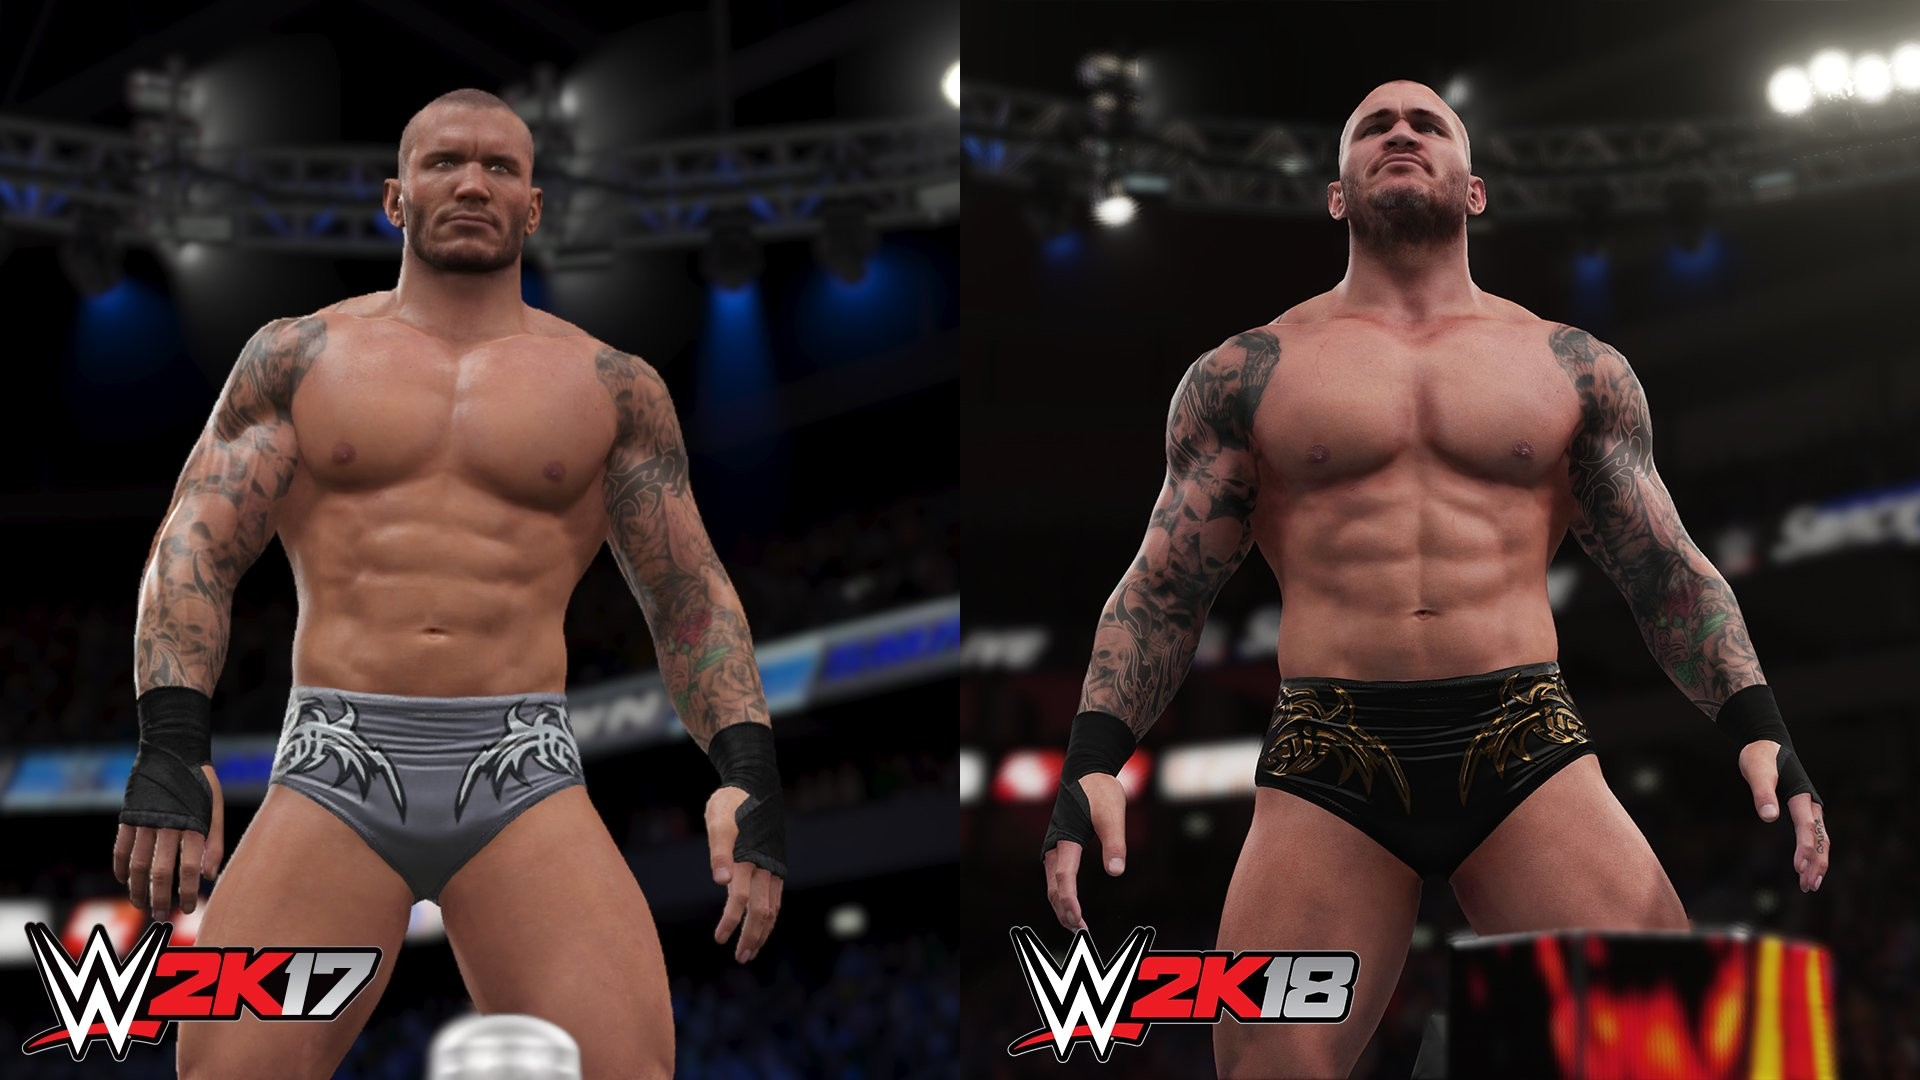 1920x1080 WWE 2K18 comparison screenshots today featuring Randy Orton, Brock Lesnar  and cover athlete Seth Rollins. They also posted some WWE 2K18 video  footage, ...